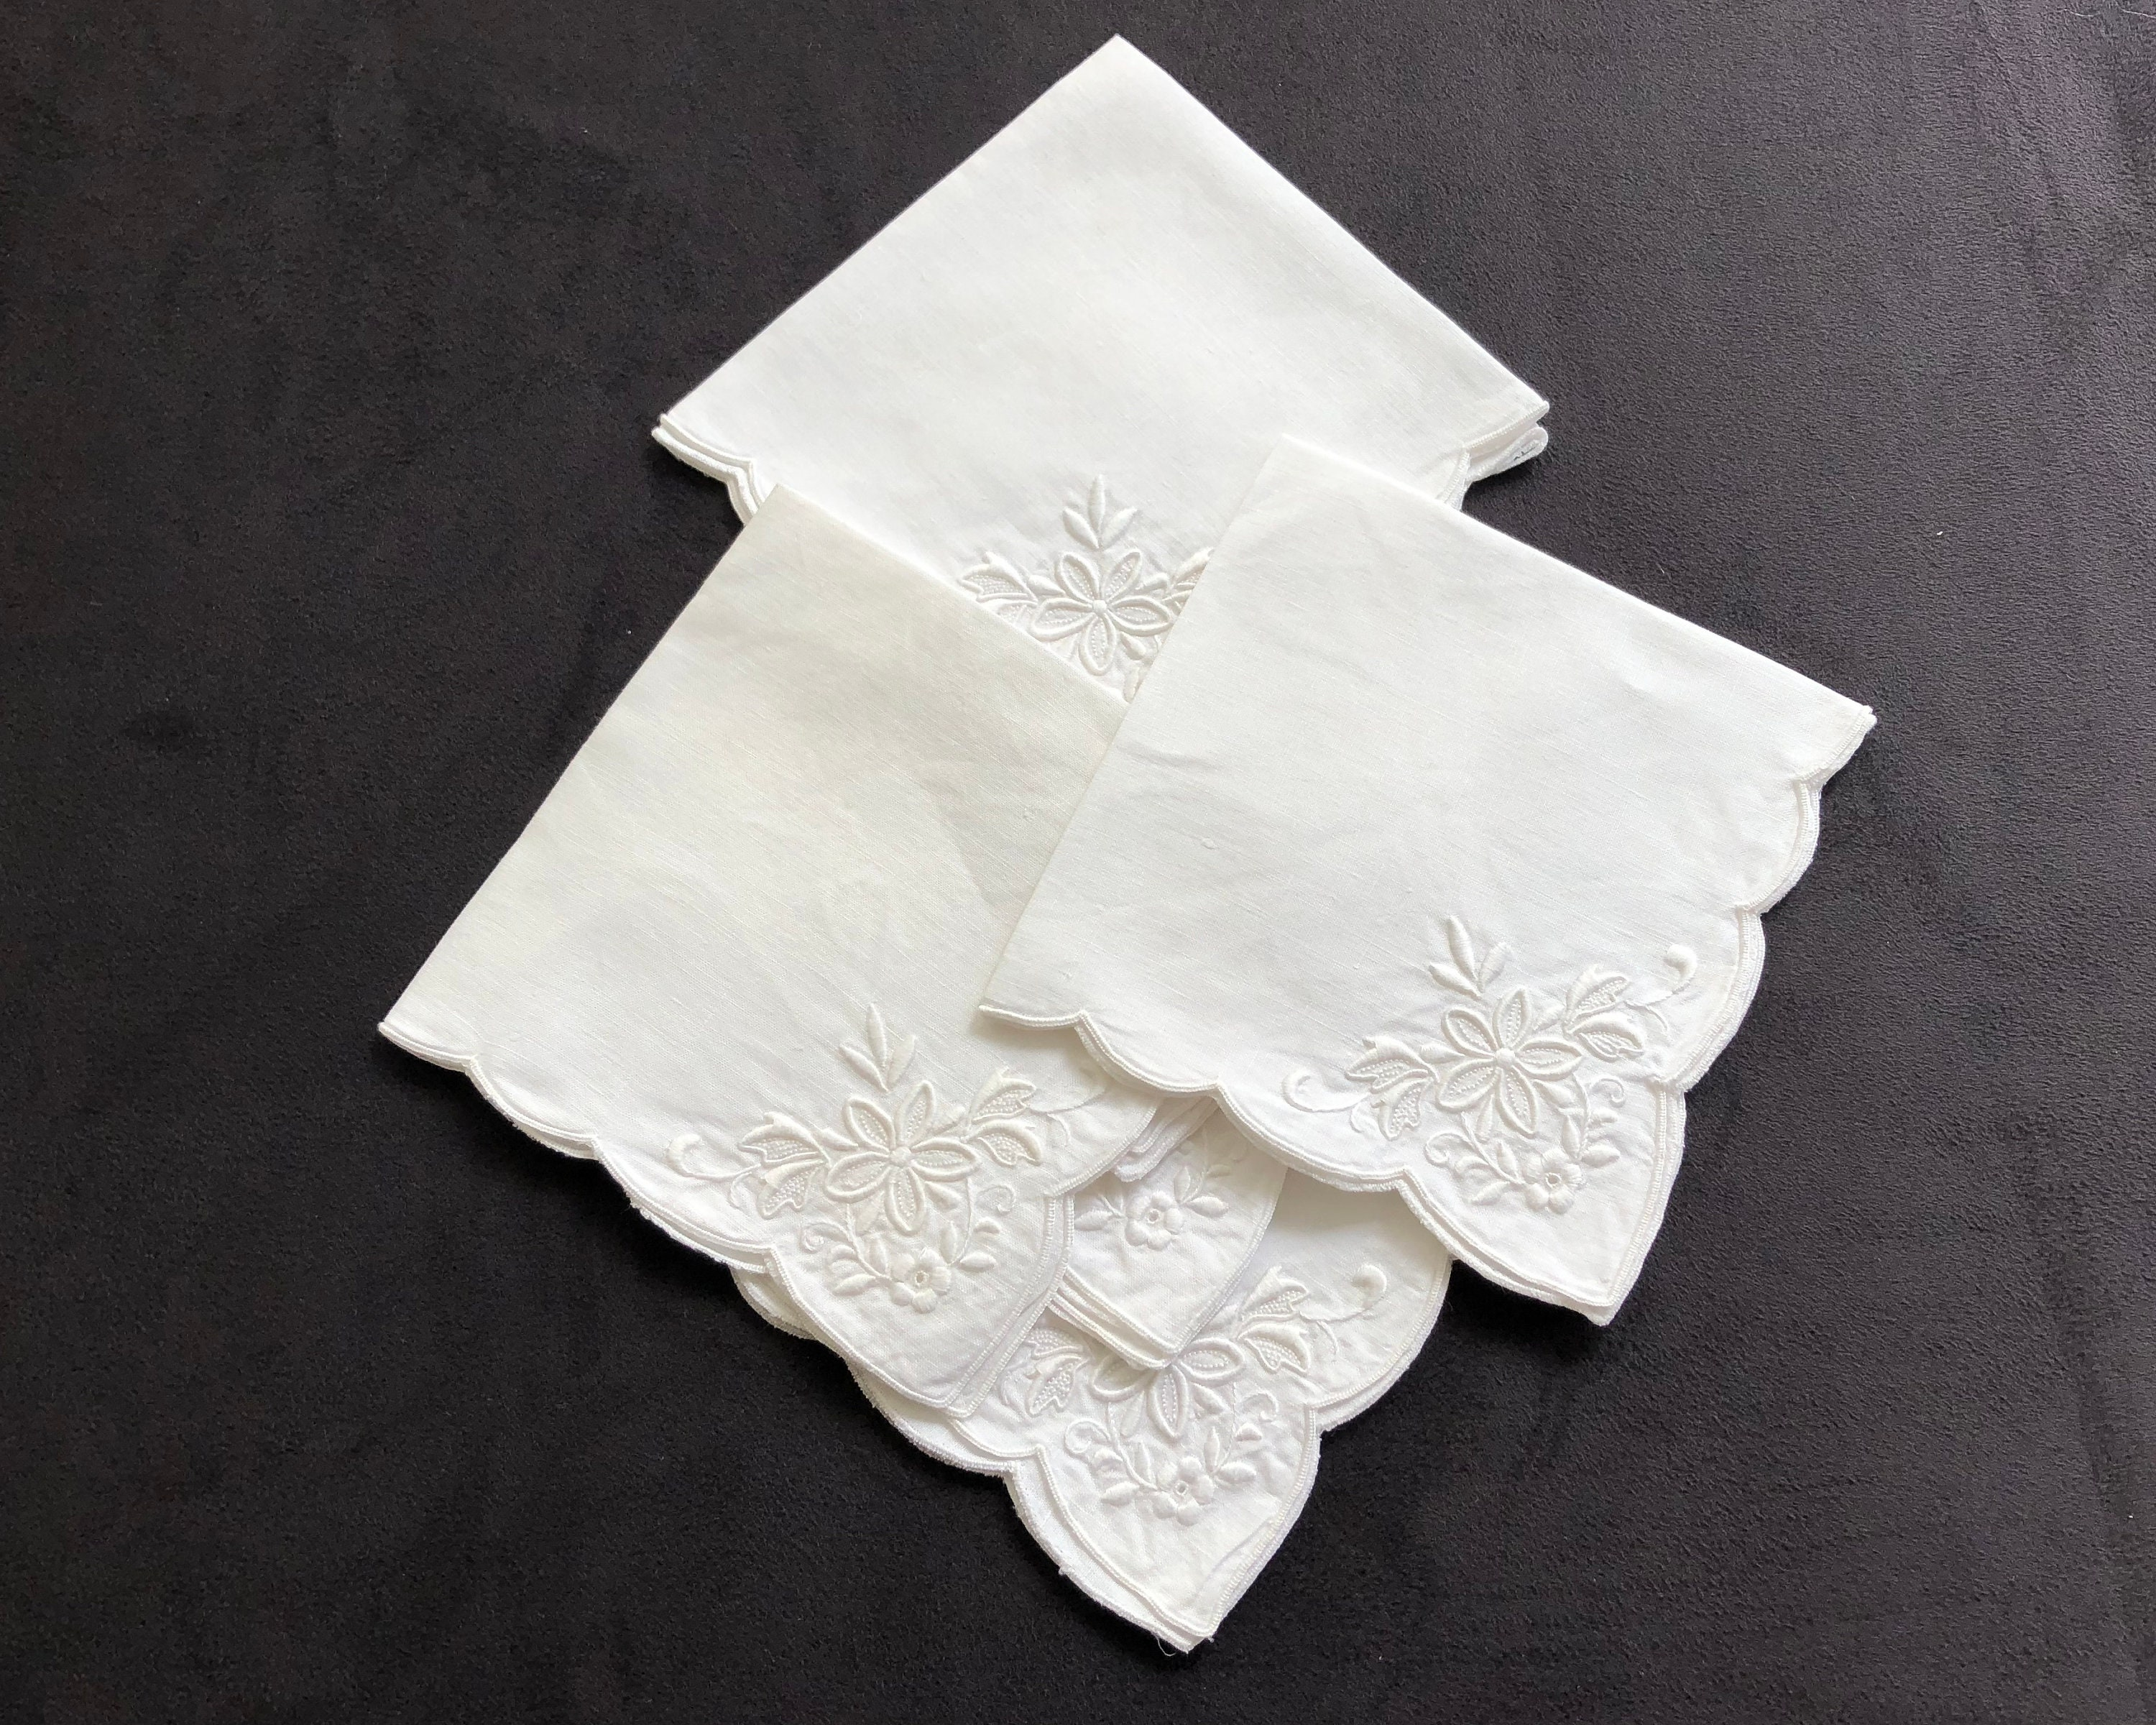 6 Vintage White Linen Embroidered Napkins Scalloped Edge Floral Embroidery 11 Inches 28cm Square